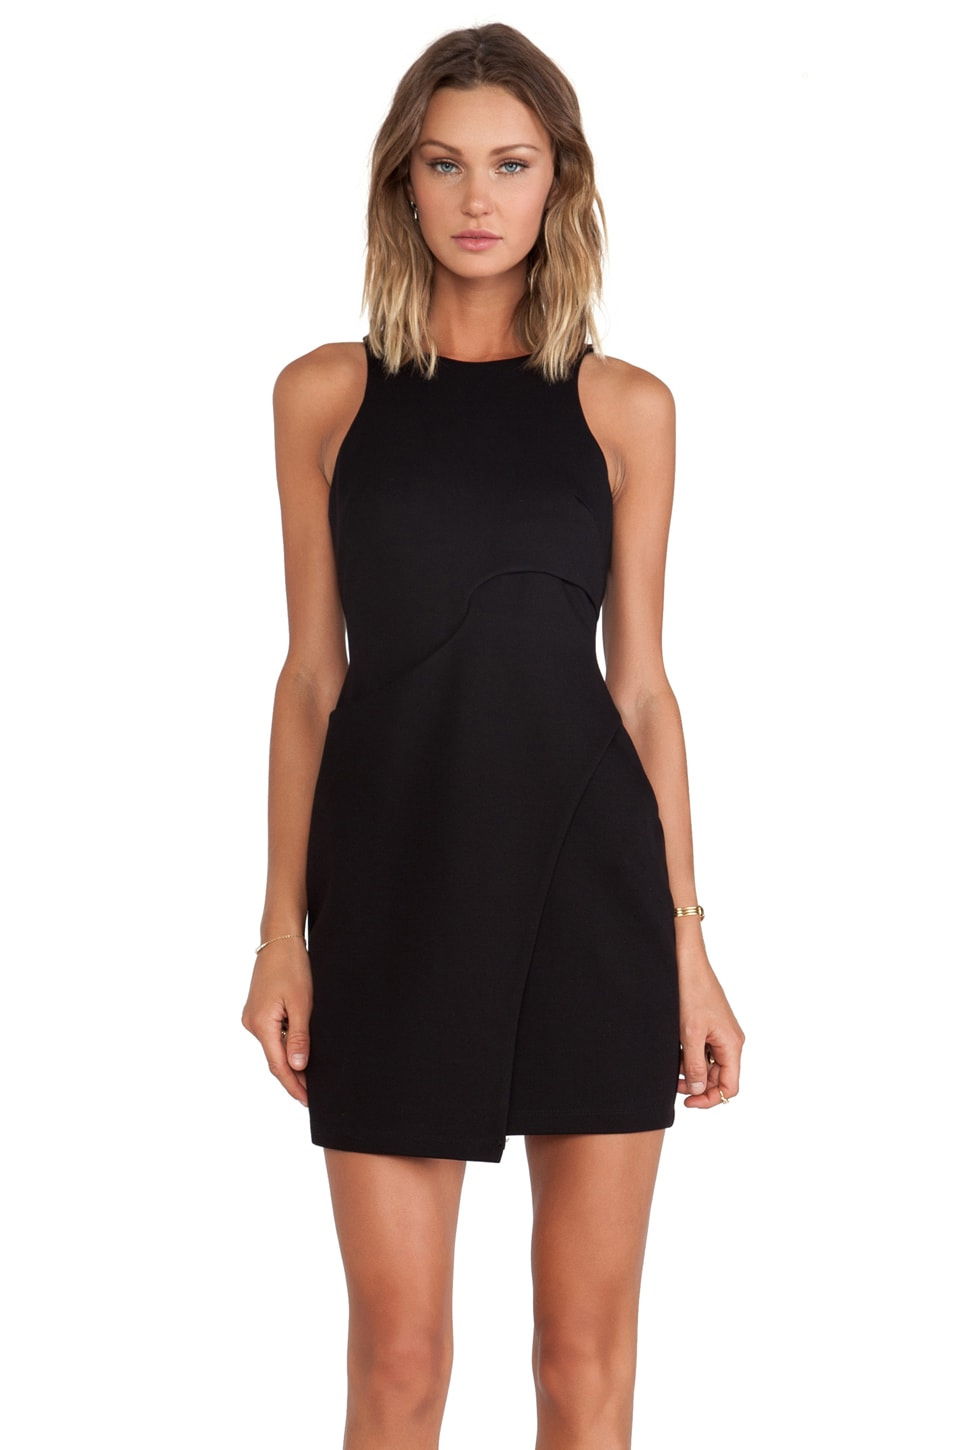 Bailey 44 Rebound Dress in Black